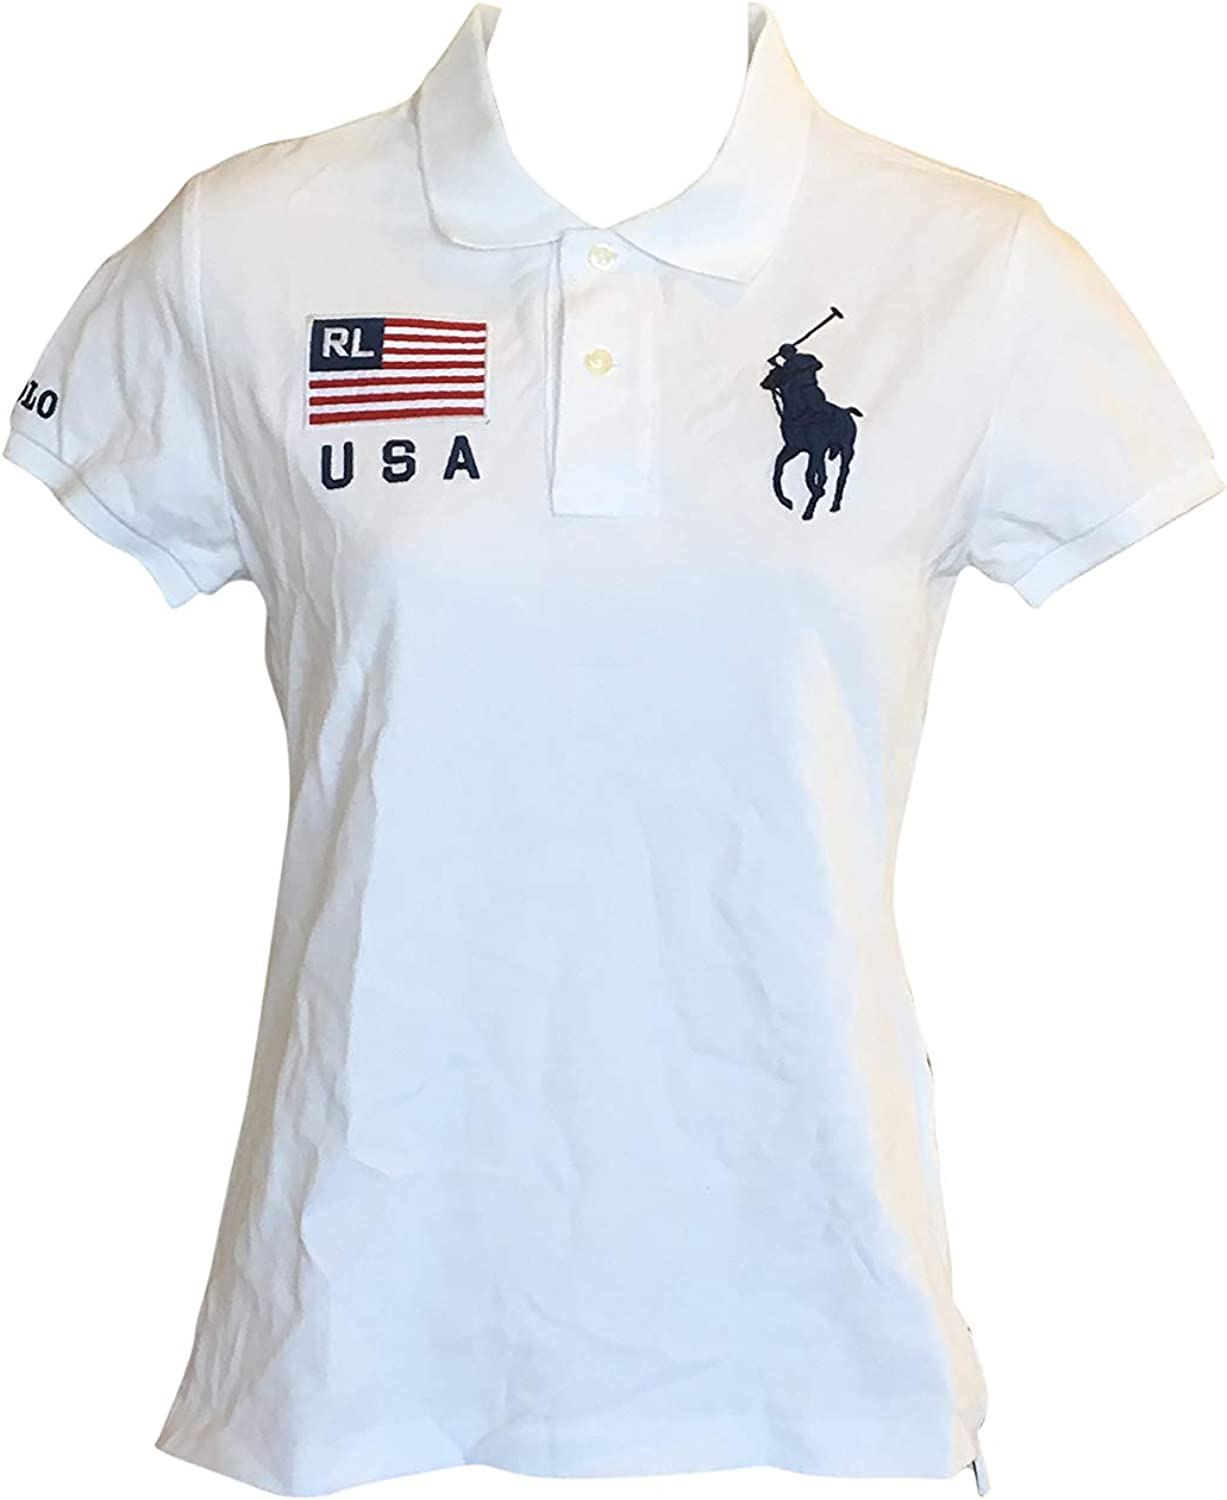 Polo Ralph Lauren Womens Skinny Fit Big Pony USA Polo Shirt